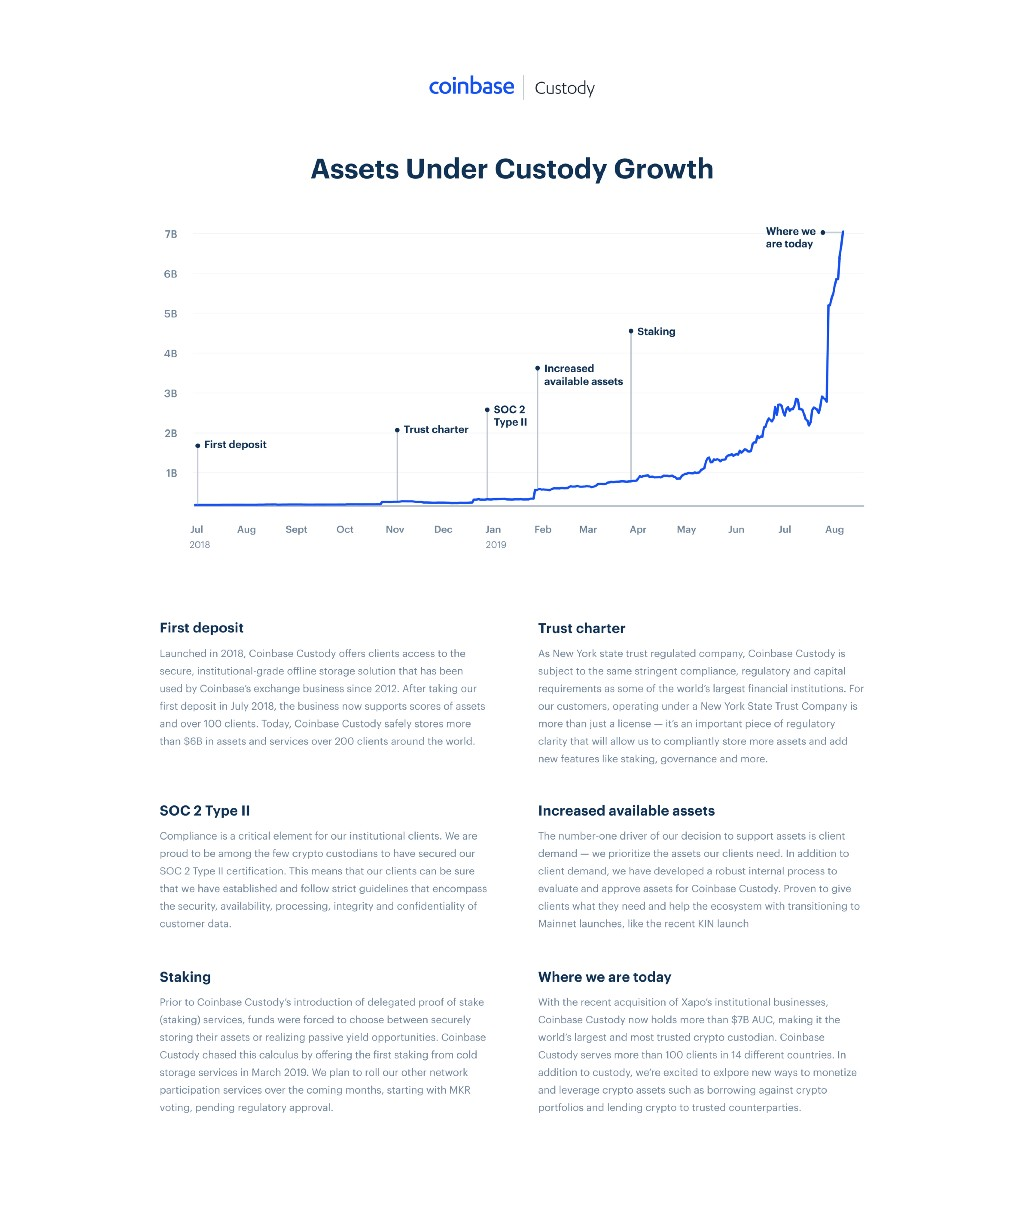 Coinbase Custody acquires Xapo's institutional business, becoming the world's largest crypto… 2